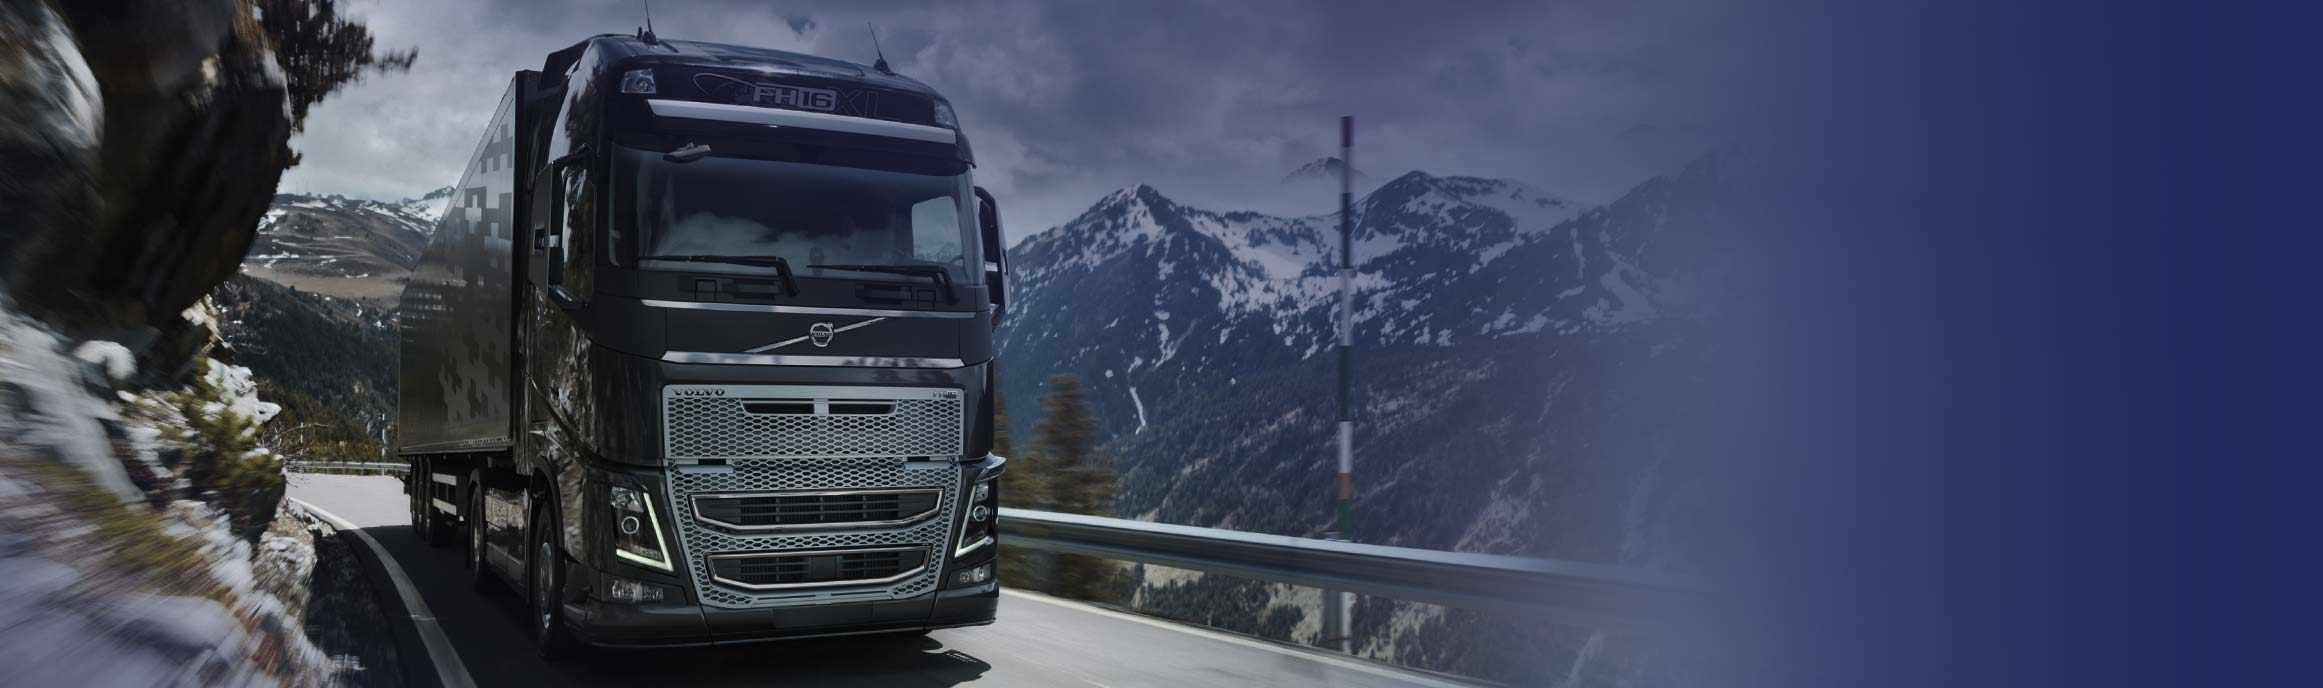 Volvo FH 16 Trucks bij BAS Truck Center